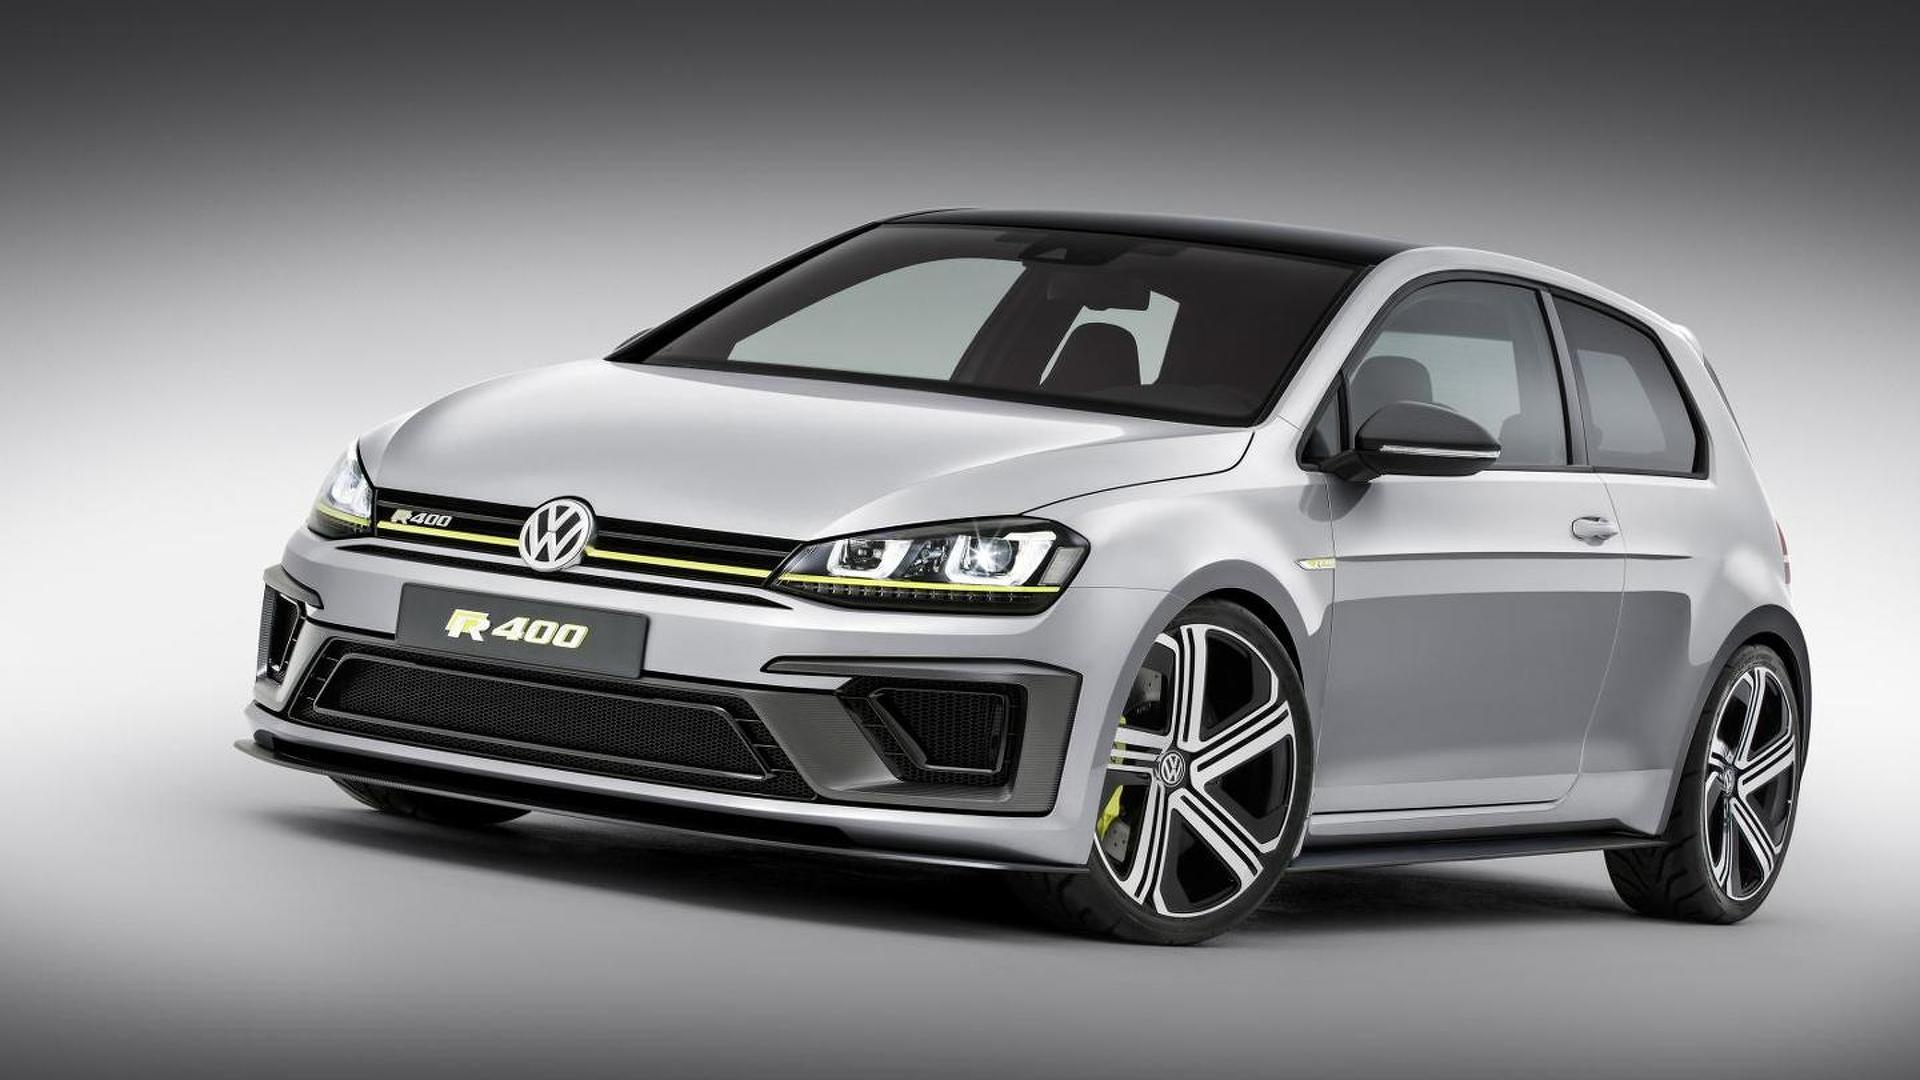 Volkswagen Golf R400 axed because of Dieselgate?